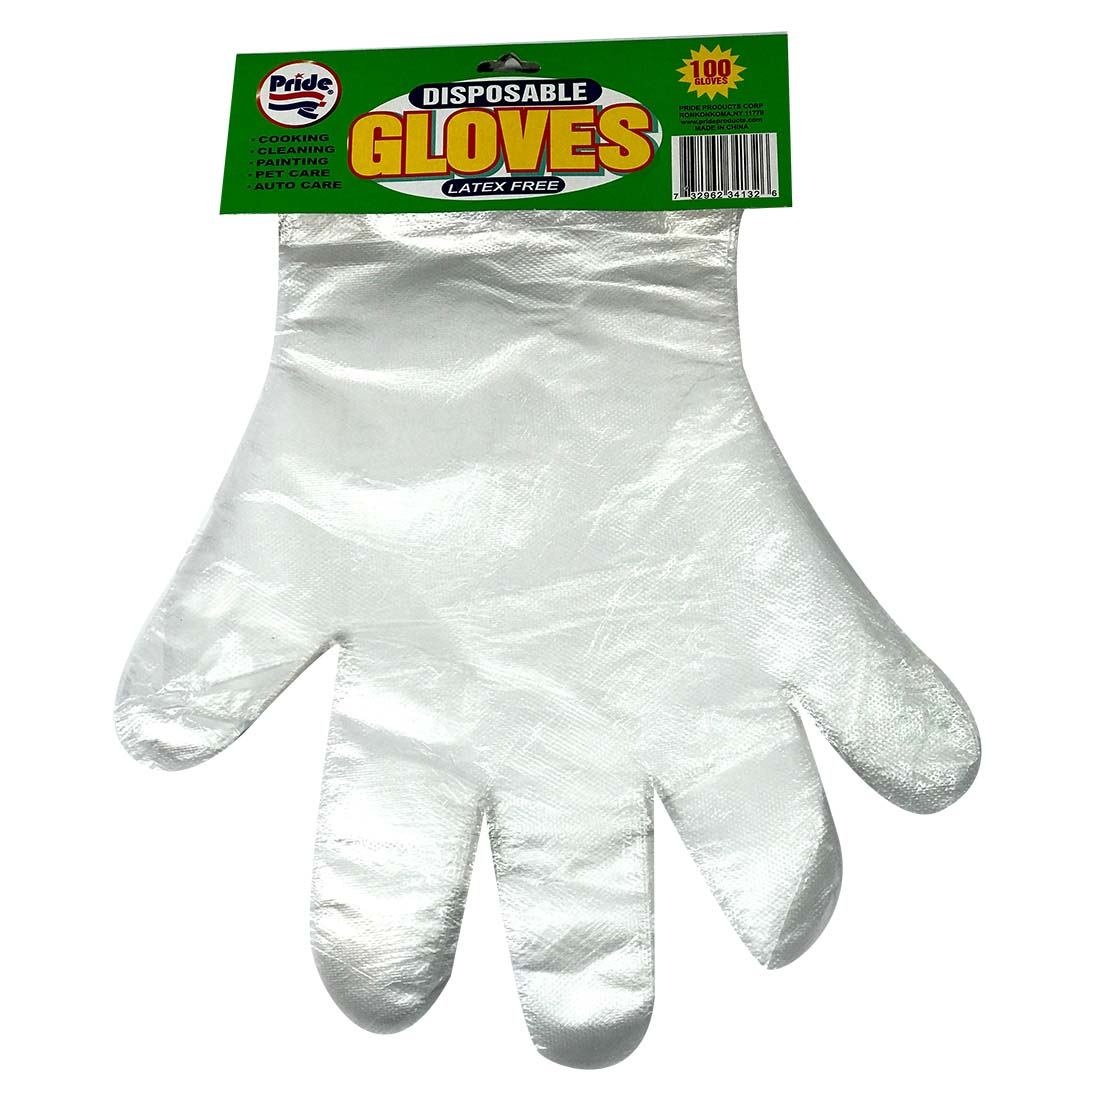 View DISPOSABLE PLASTIC GLOVES 100 COUNT ONE SIZE